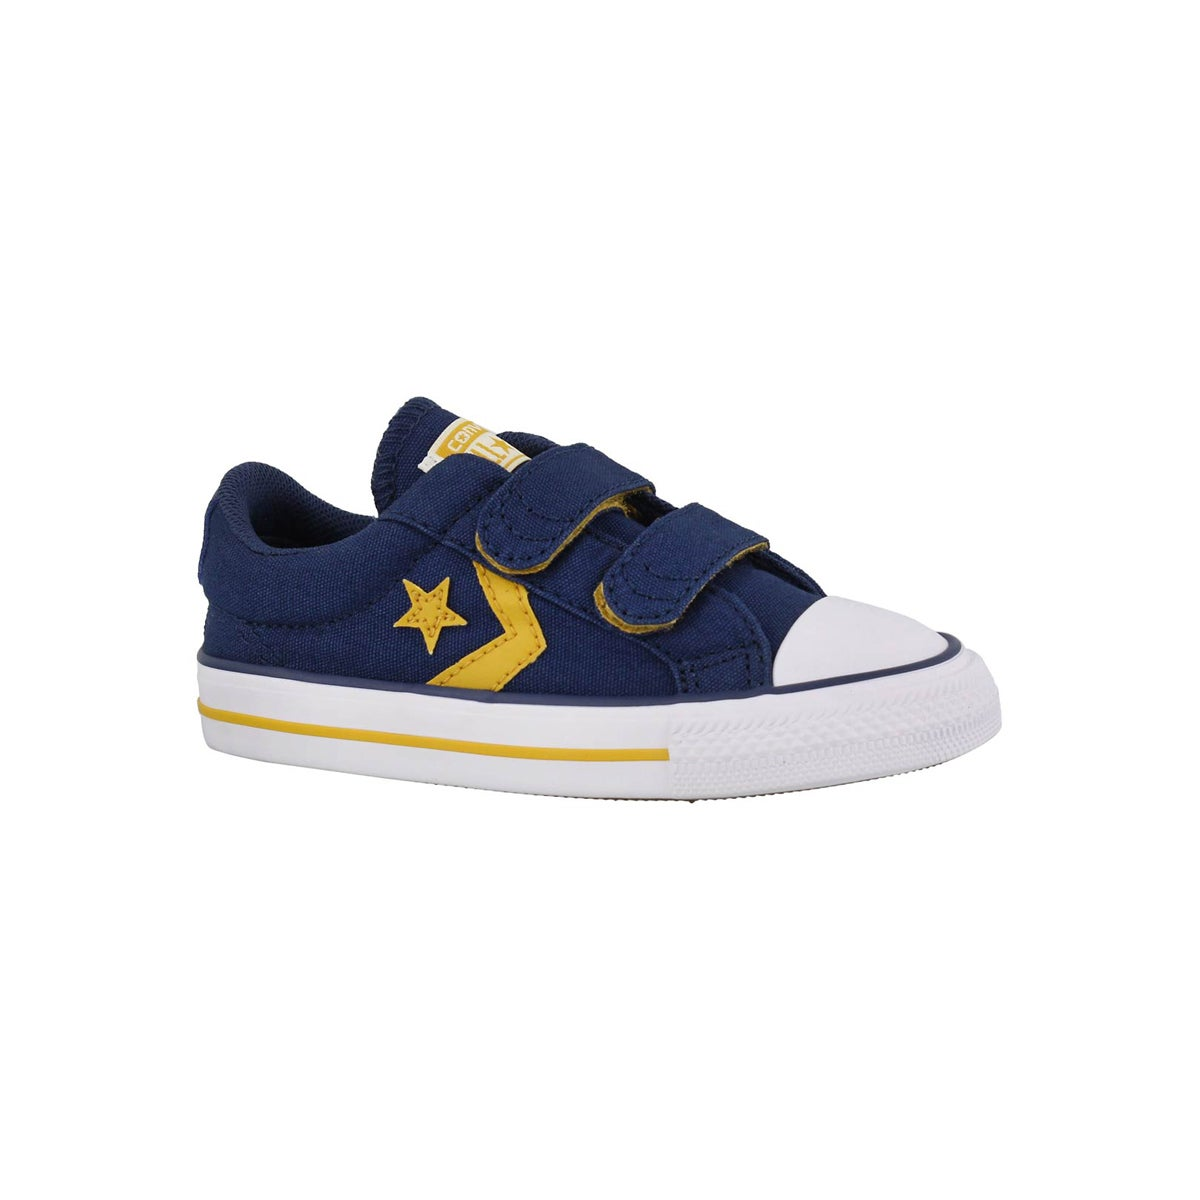 Infants' STAR PLAYER 2V navy/yellow/white sneakers